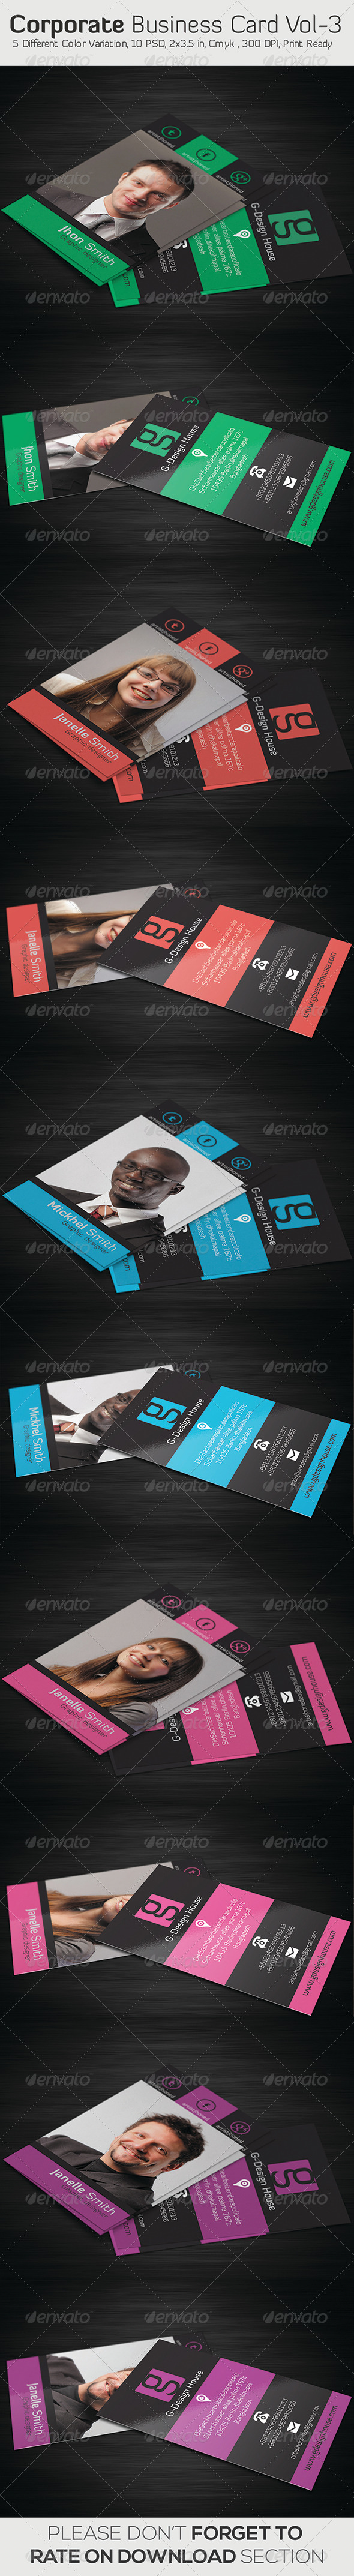 Corporate Business Card Vol- 03 - Business Cards Print Templates